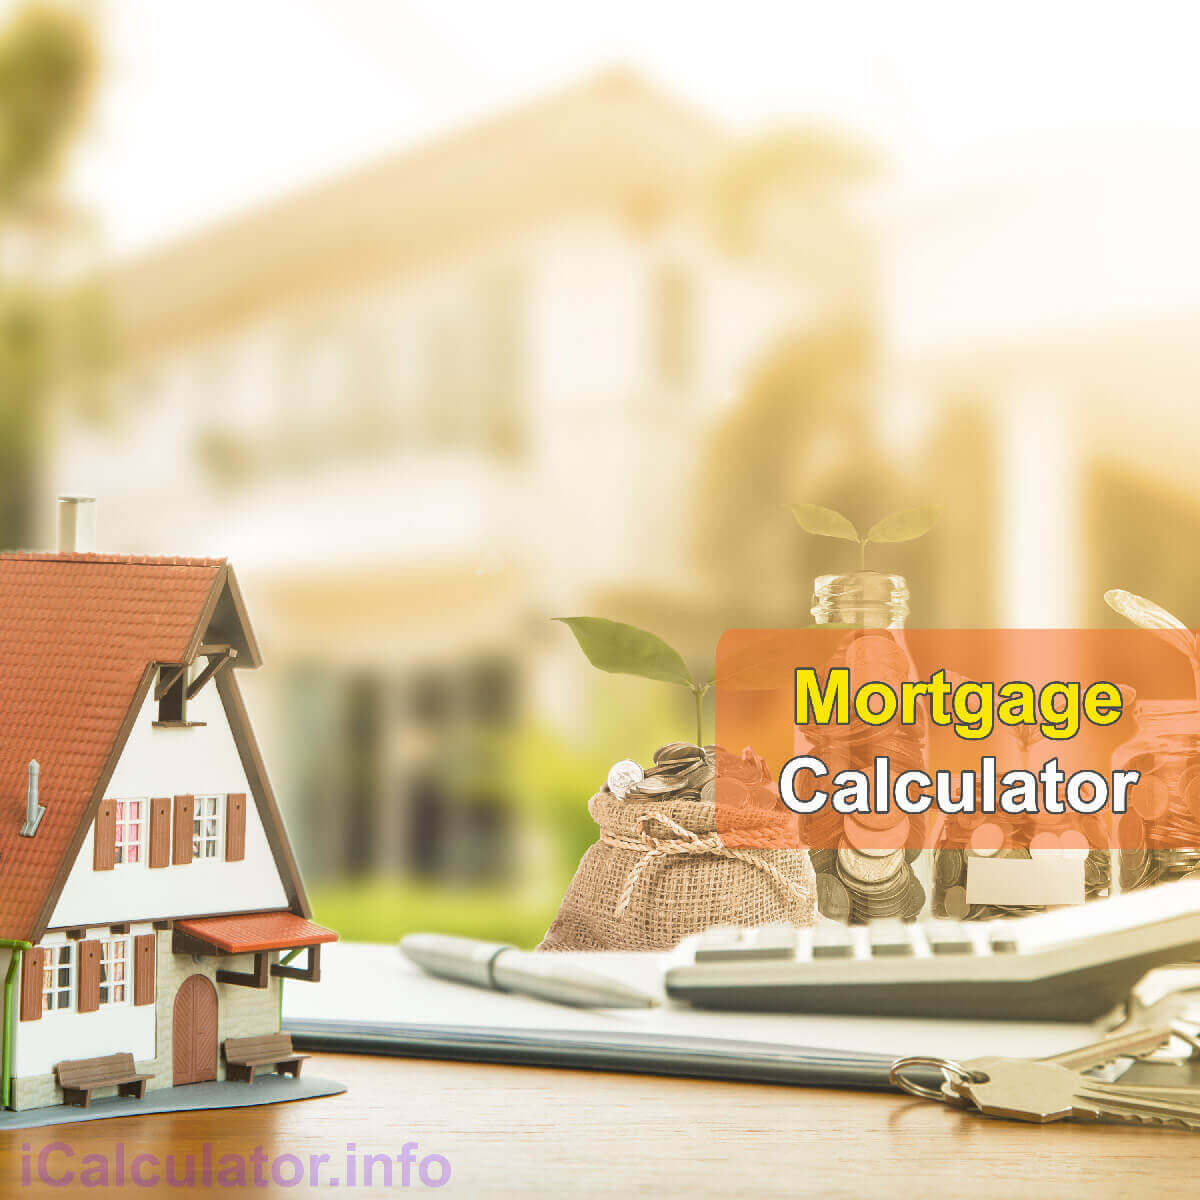 Mortgage Calculator. This image shows a beautiful home for a first time buyer, a notepad and a calculator being used to calculate the monthly repayment amount on a £440,250.00 mortgage with a 6.7% mortgage interest rate. Alternatively, people can calculate their monthly mortgage repayments on £440,250.00 at 6.7% using the mortgage calculator by iCalculator Finance Tax Calculator